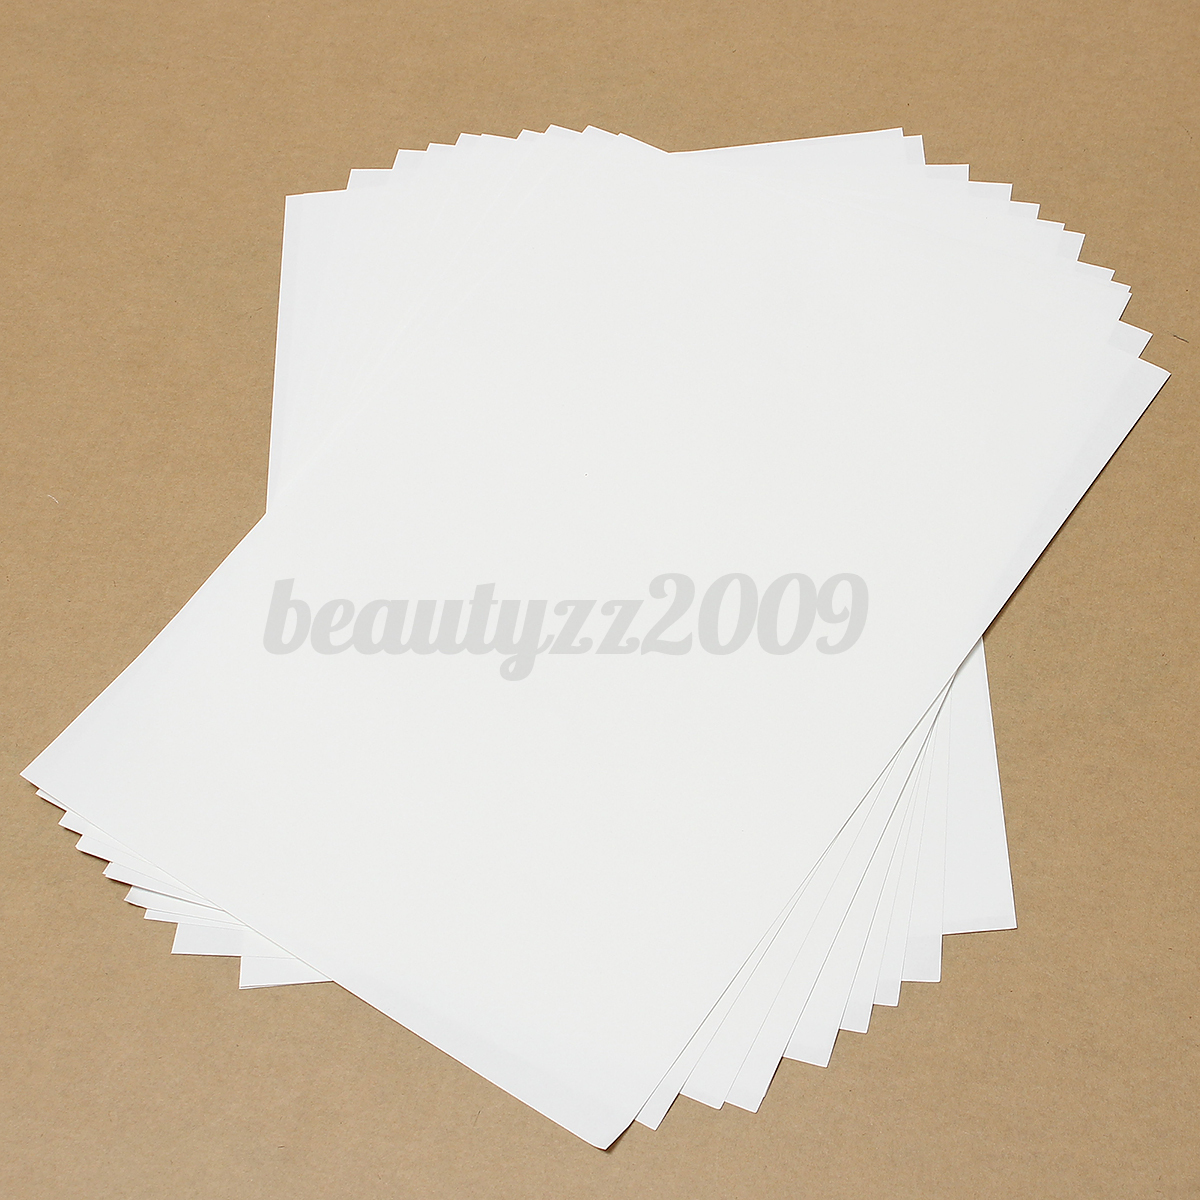 10x t shirt print iron on heat transfer paper sheets for for Iron on shirt paper